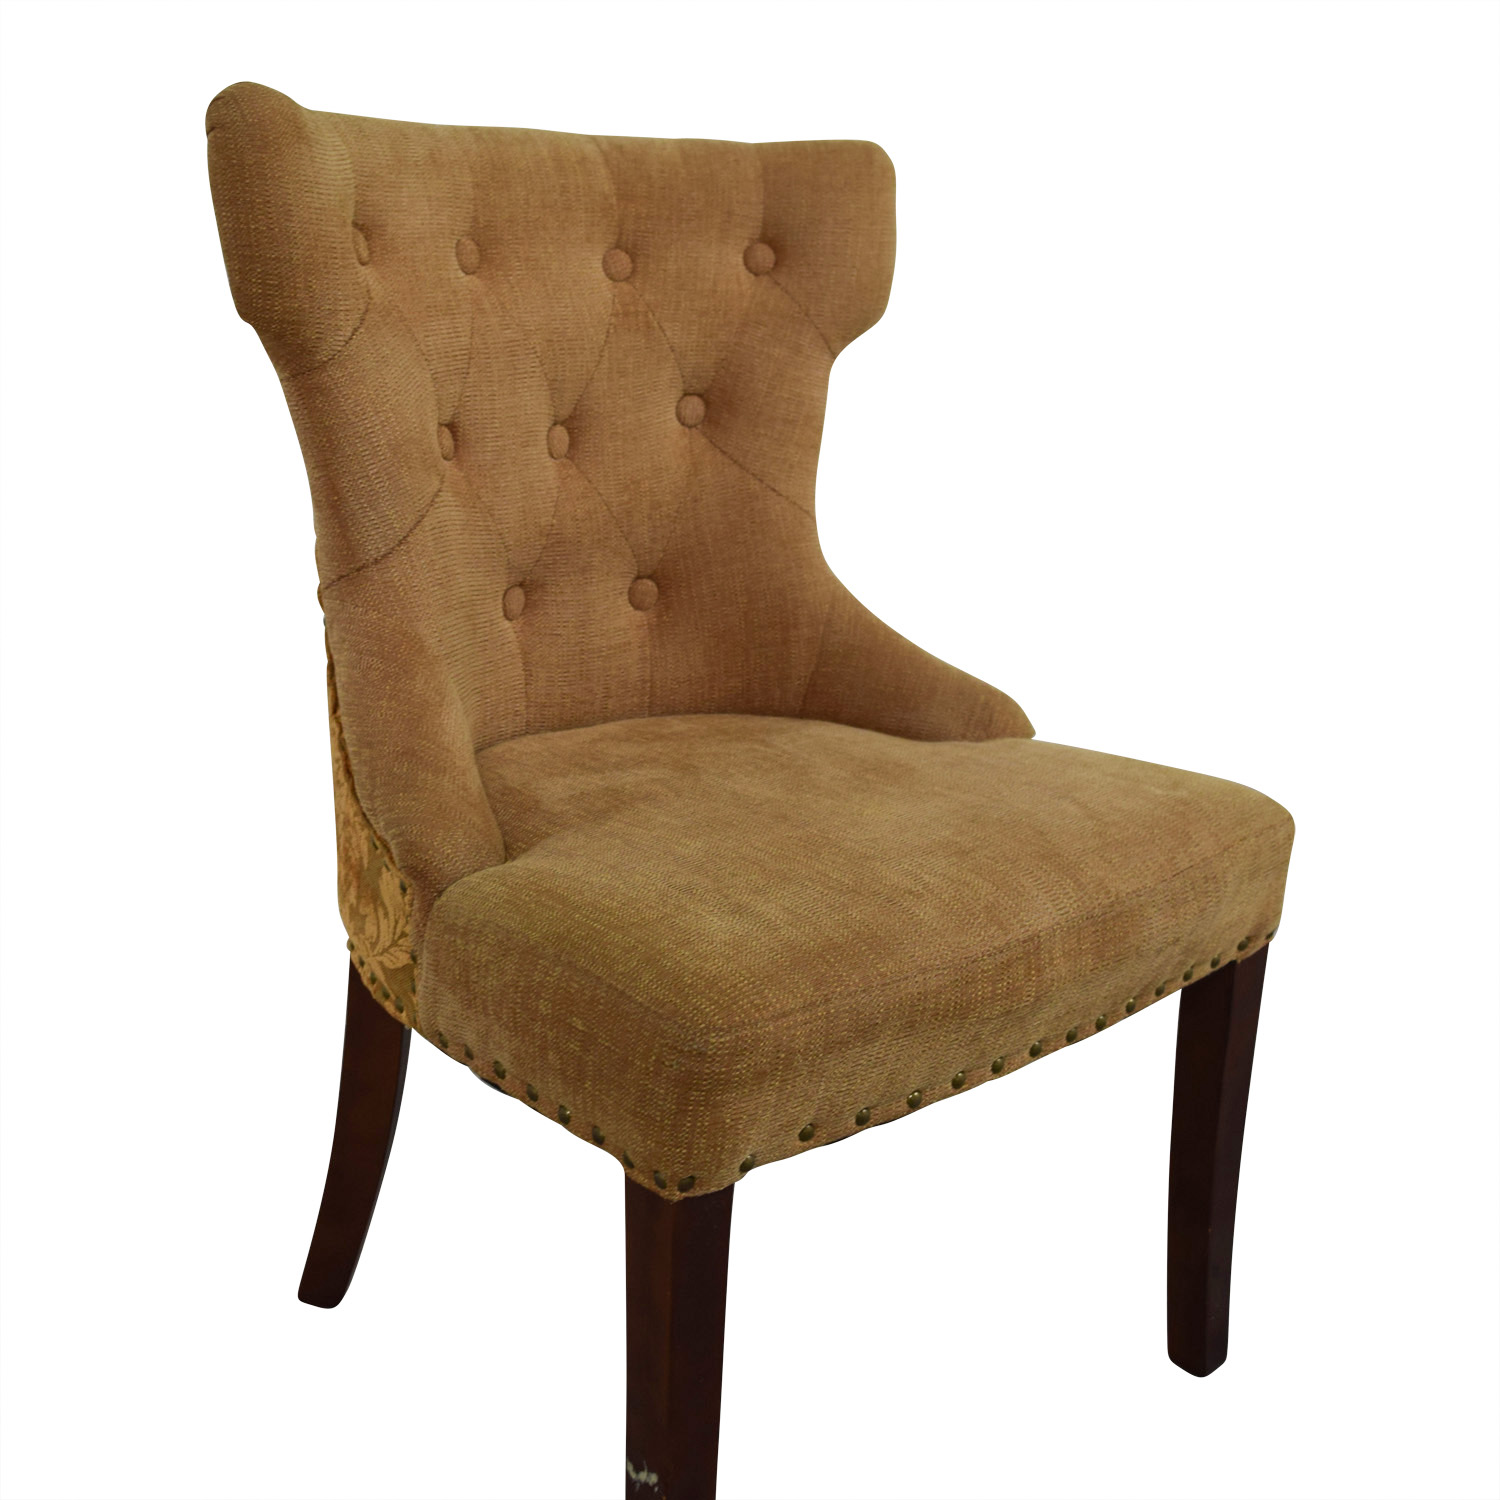 90 Off Pier 1 Pier 1 Beige Accent Chair Chairs